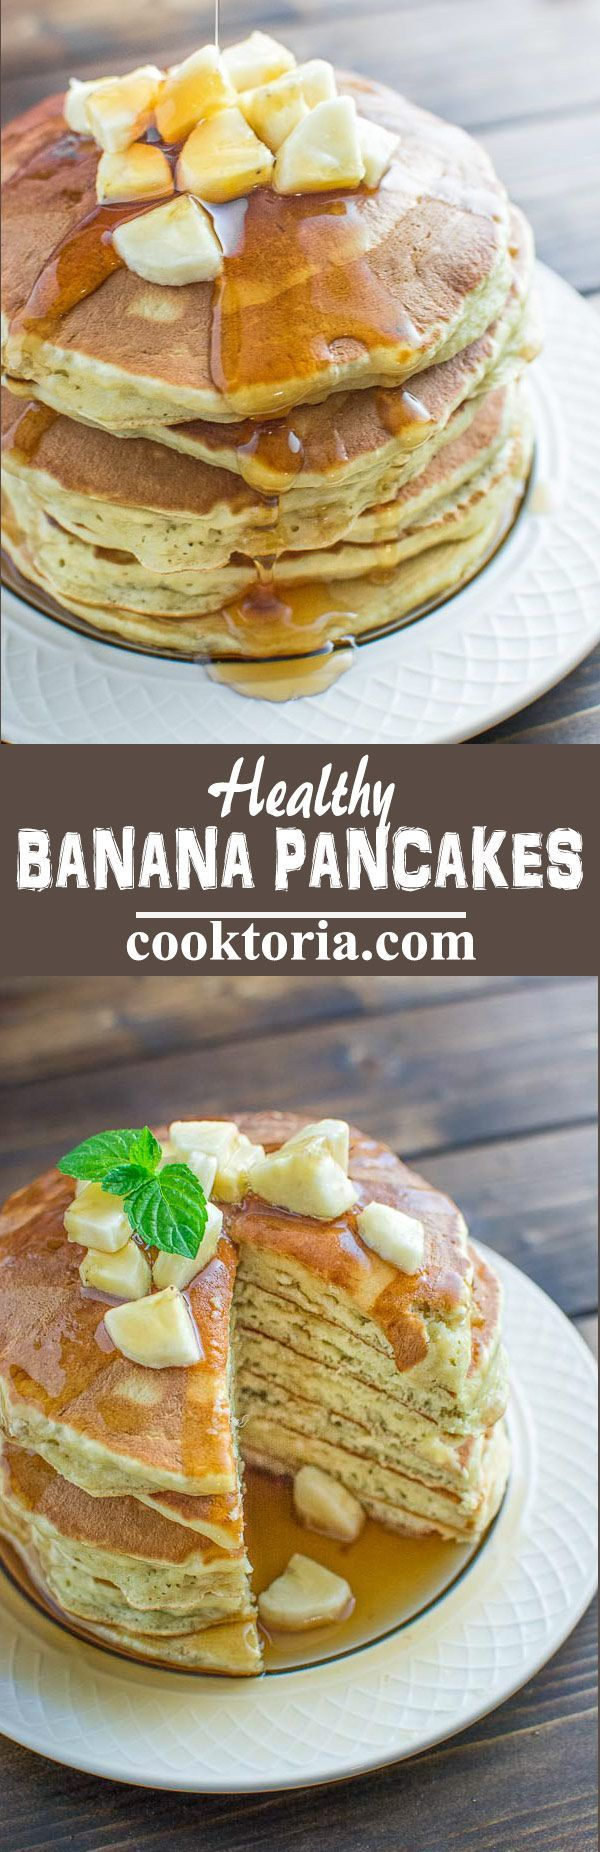 These Healthy Banana Pancakes are so easy to make and so fluffy and tasty. And there's no added sugar! At 140 calories per pancake, these are a must try. ❤ http://COOKTORIA.COM